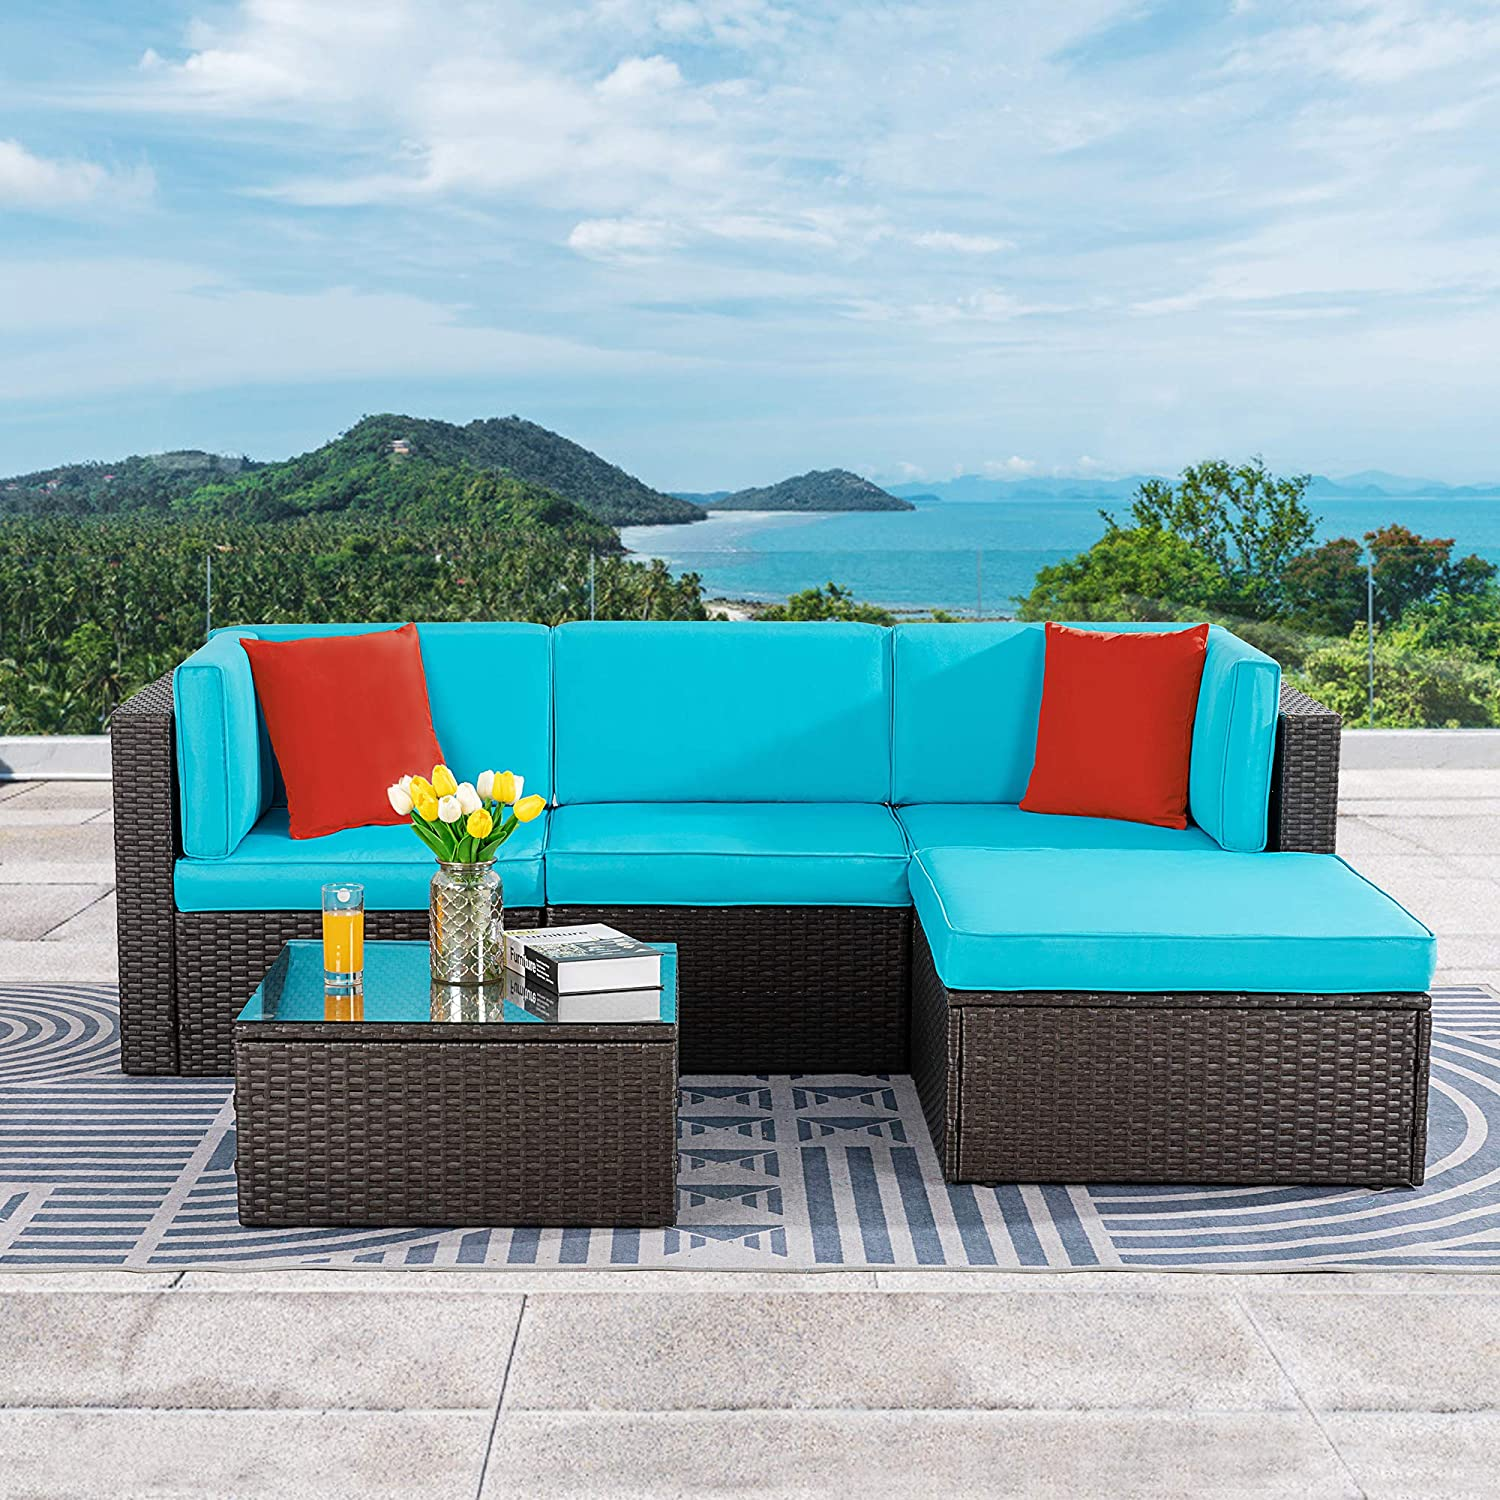 Vongrasig 5 Piece Patio Furniture Sets, All-Weather Brown PE Wicker Outdoor Couch Sectional Patio Set, Small Patio Conversation Set Garden Patio Sofa Set w/Ottoman, Glass Table, Red Pillow, Blue